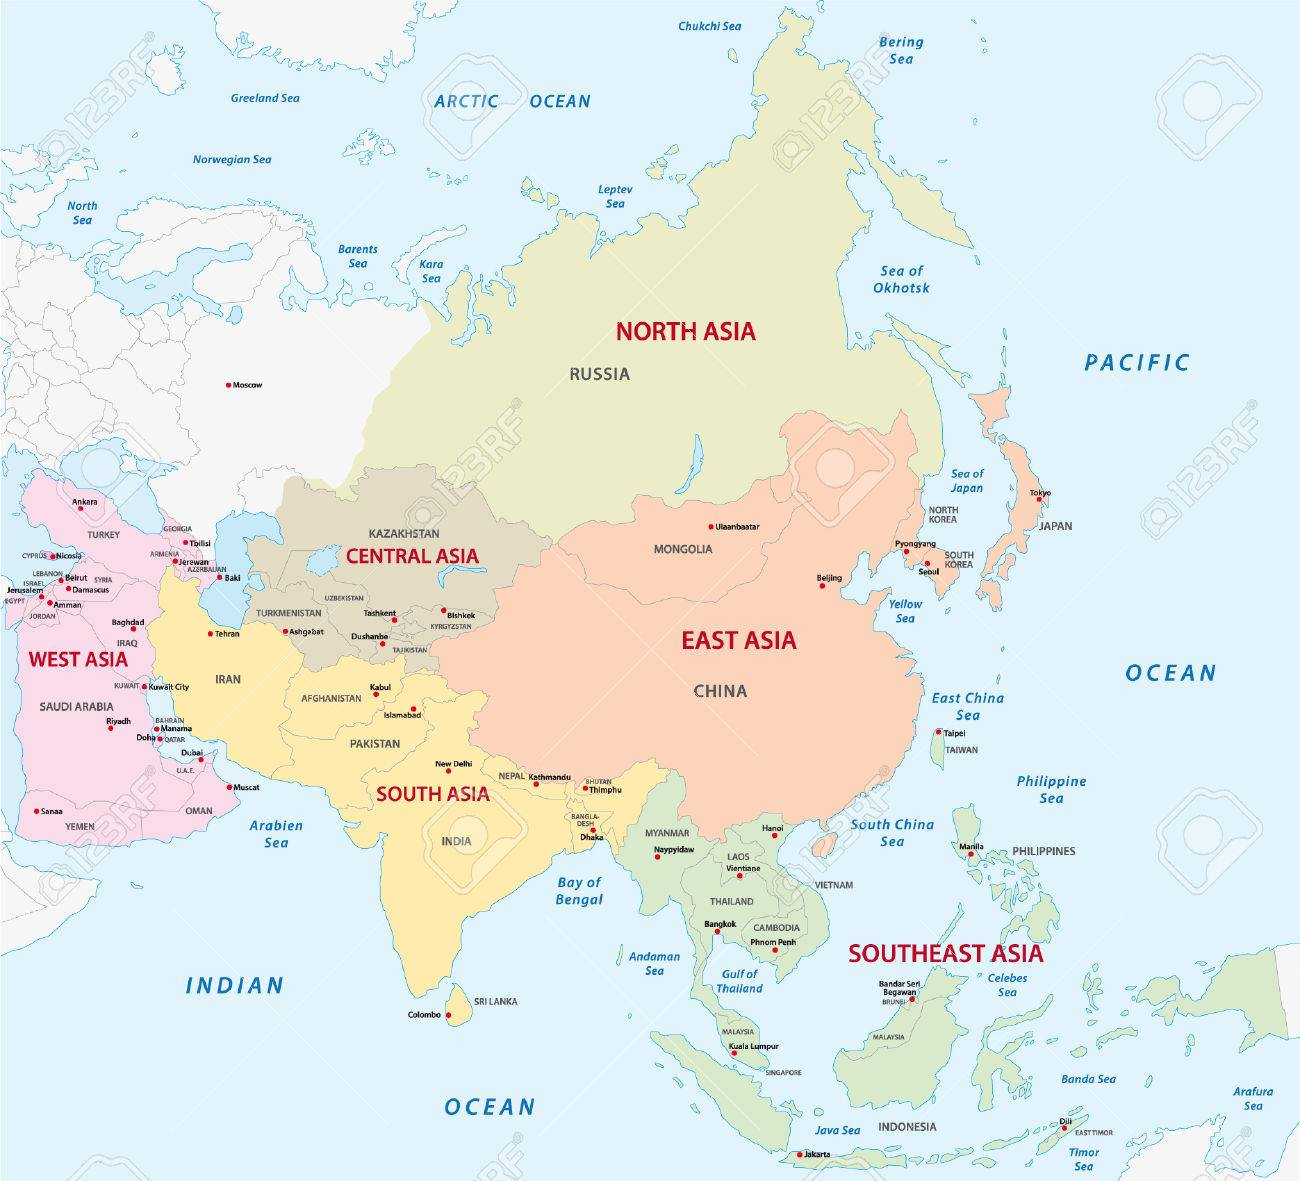 map of the asian sub-regions